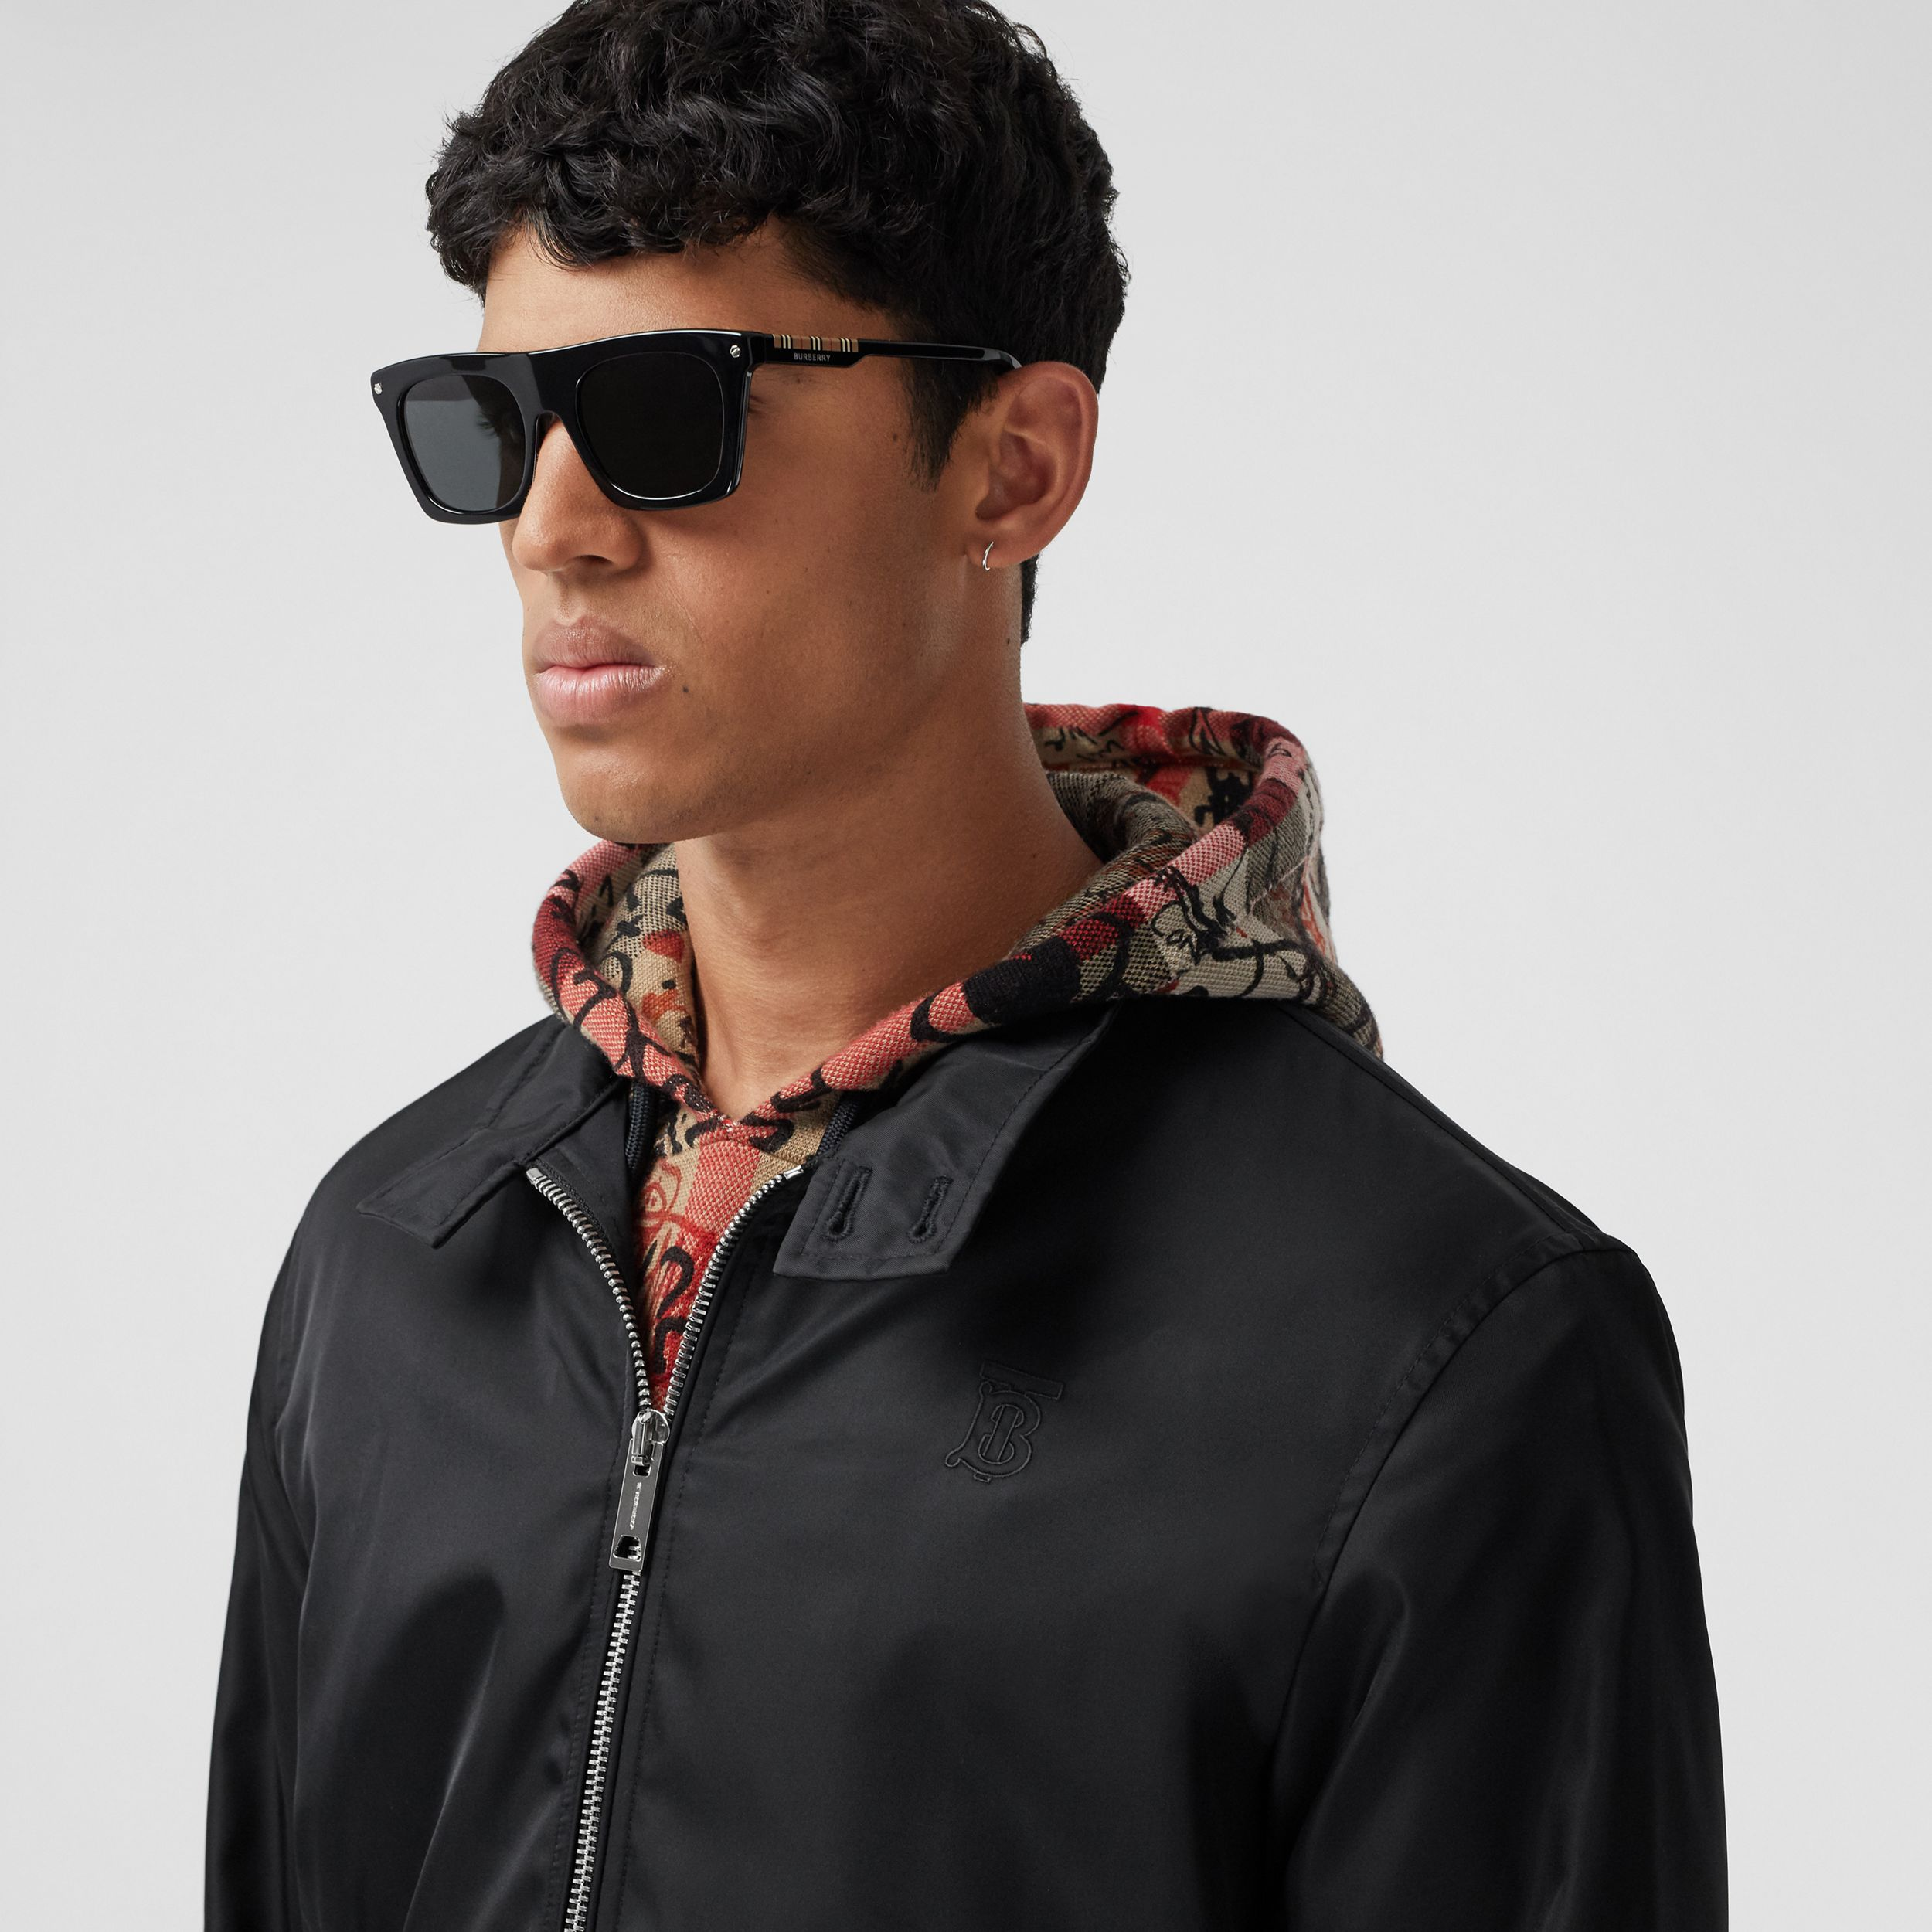 Monogram Motif ECONYL® Jacket in Black - Men | Burberry Australia - 2